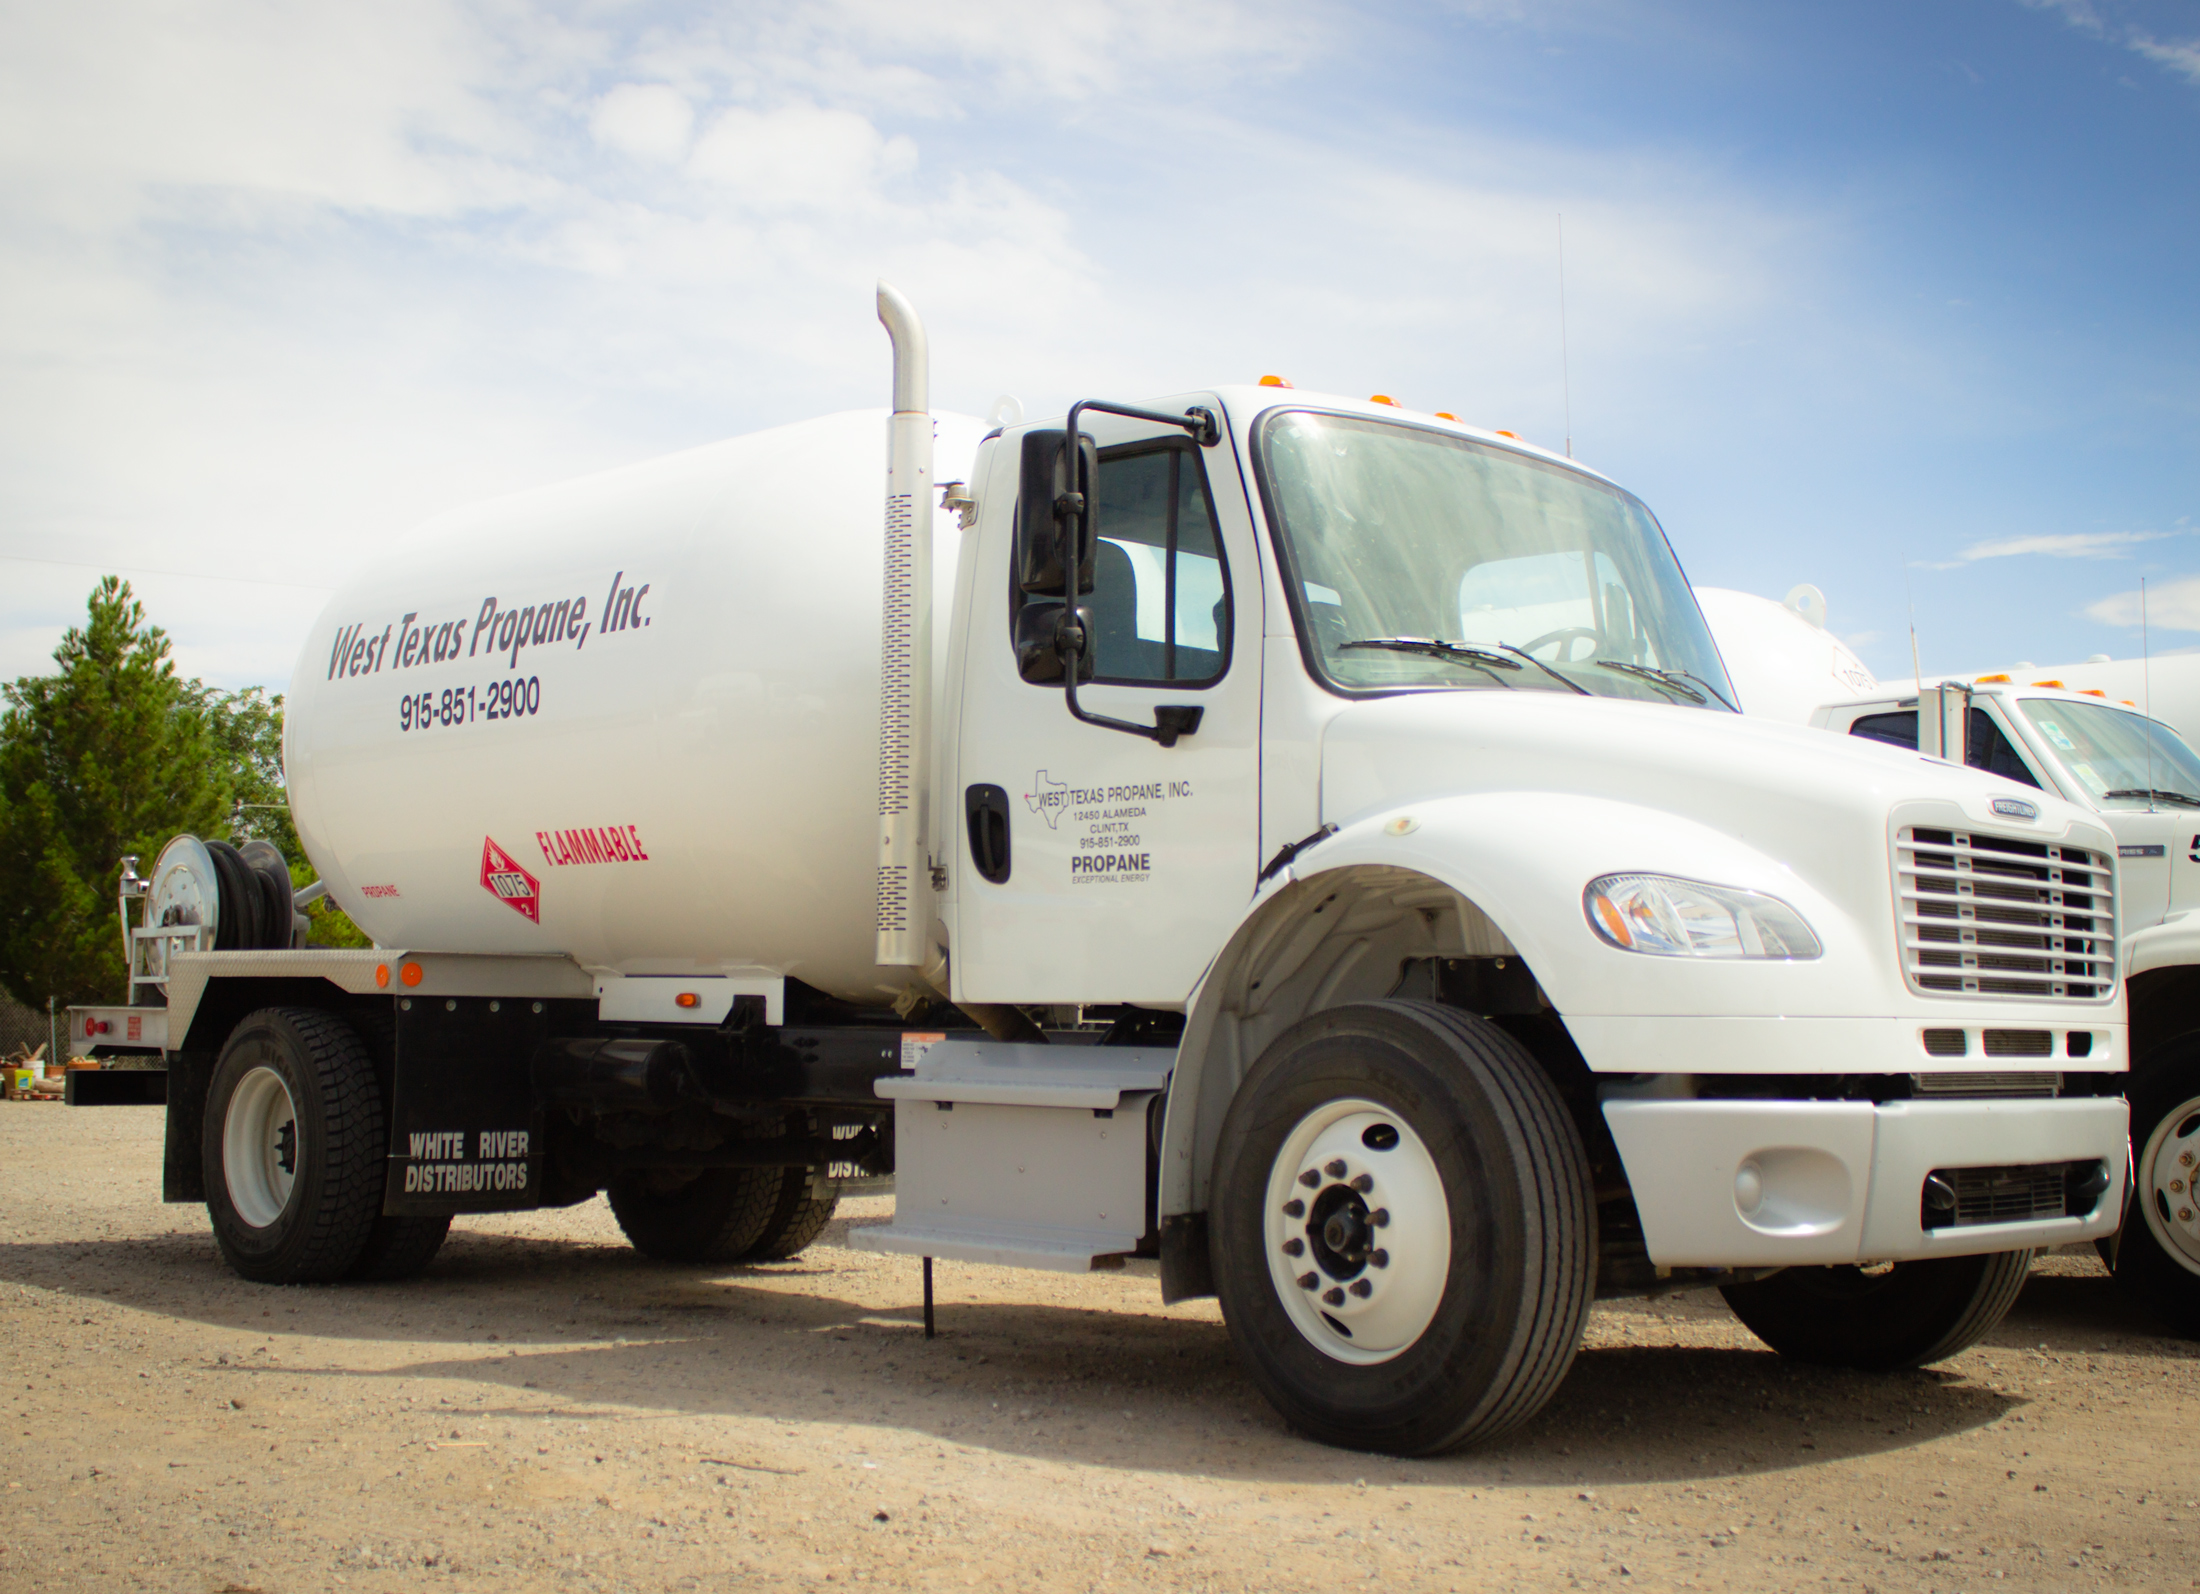 West Texas Propane | Serving the Clint & El Paso, TX area since 1987